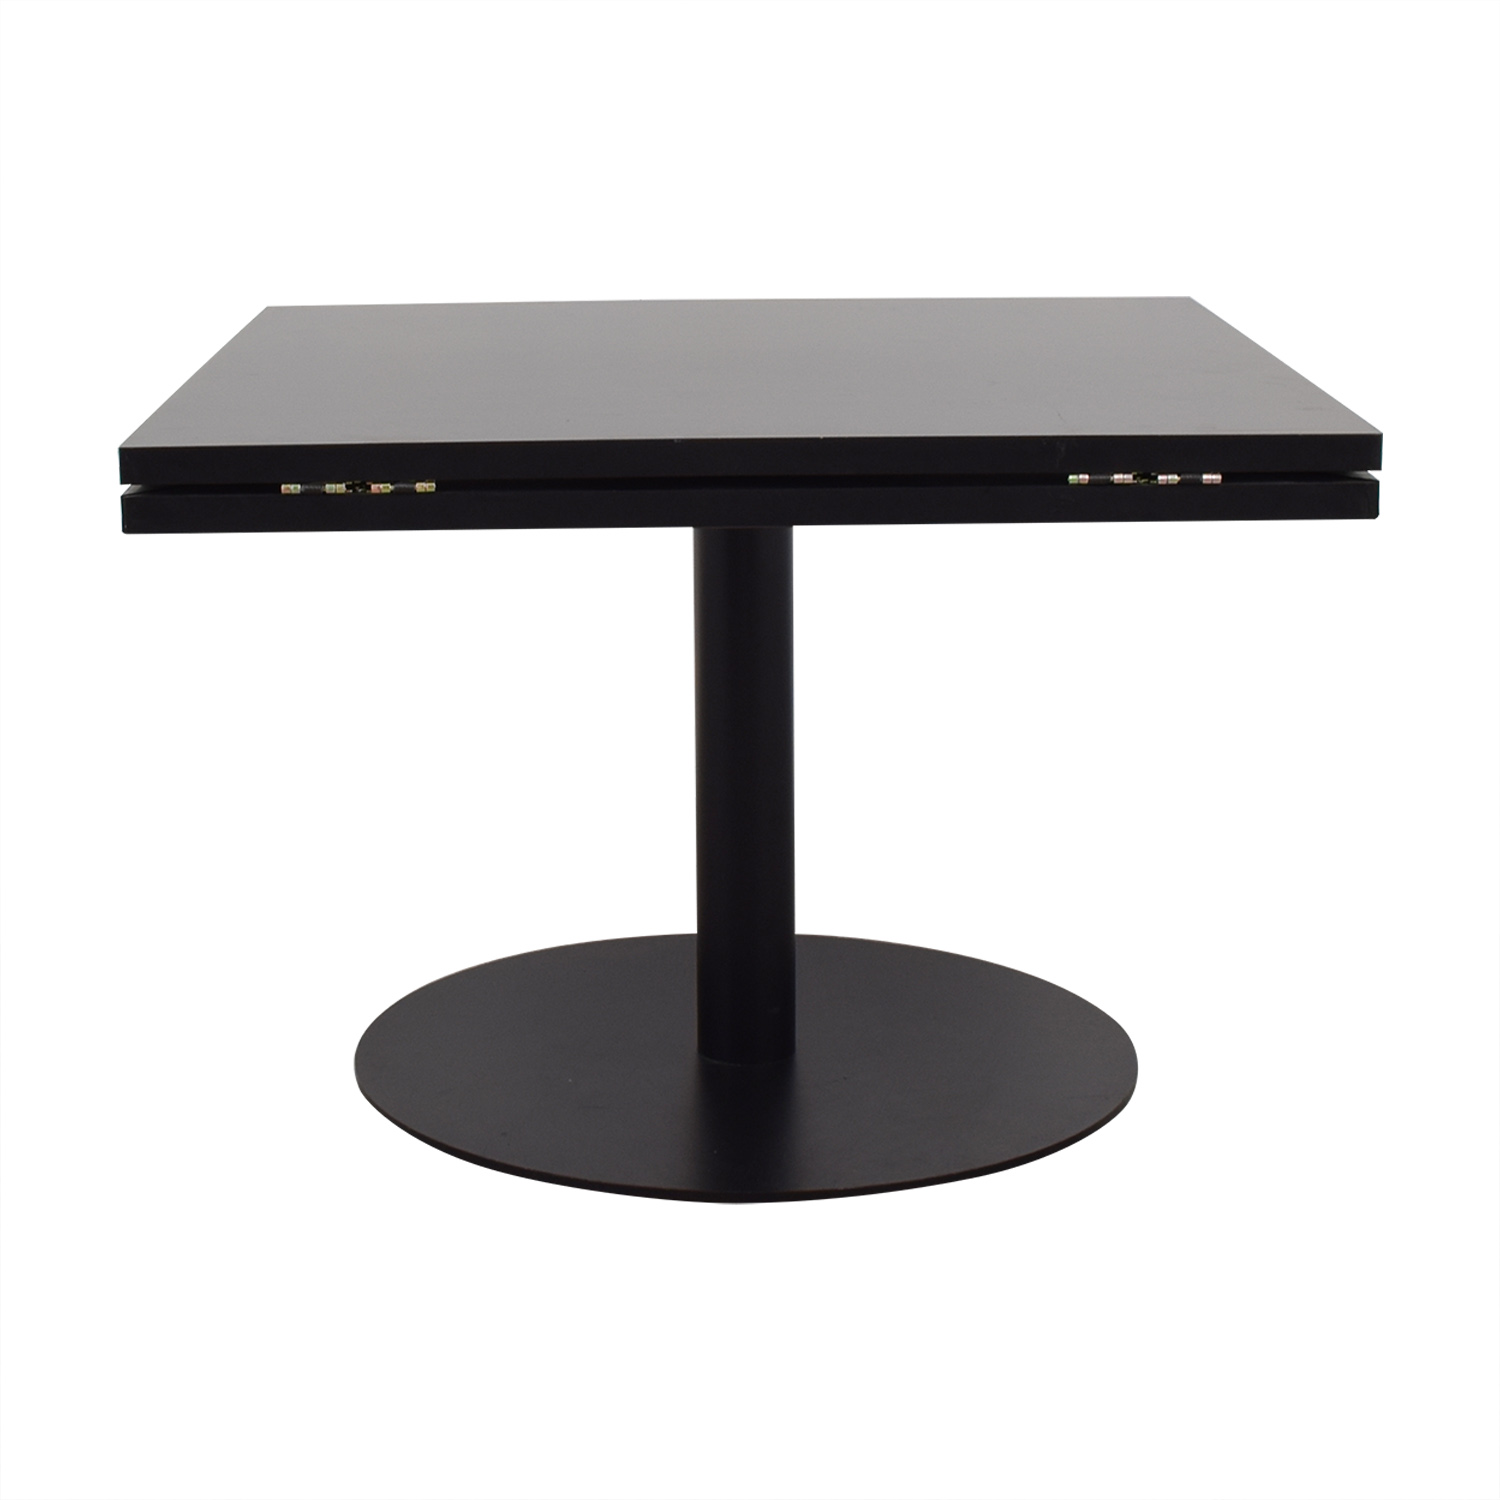 Black Square to Round Foldable Sides Table